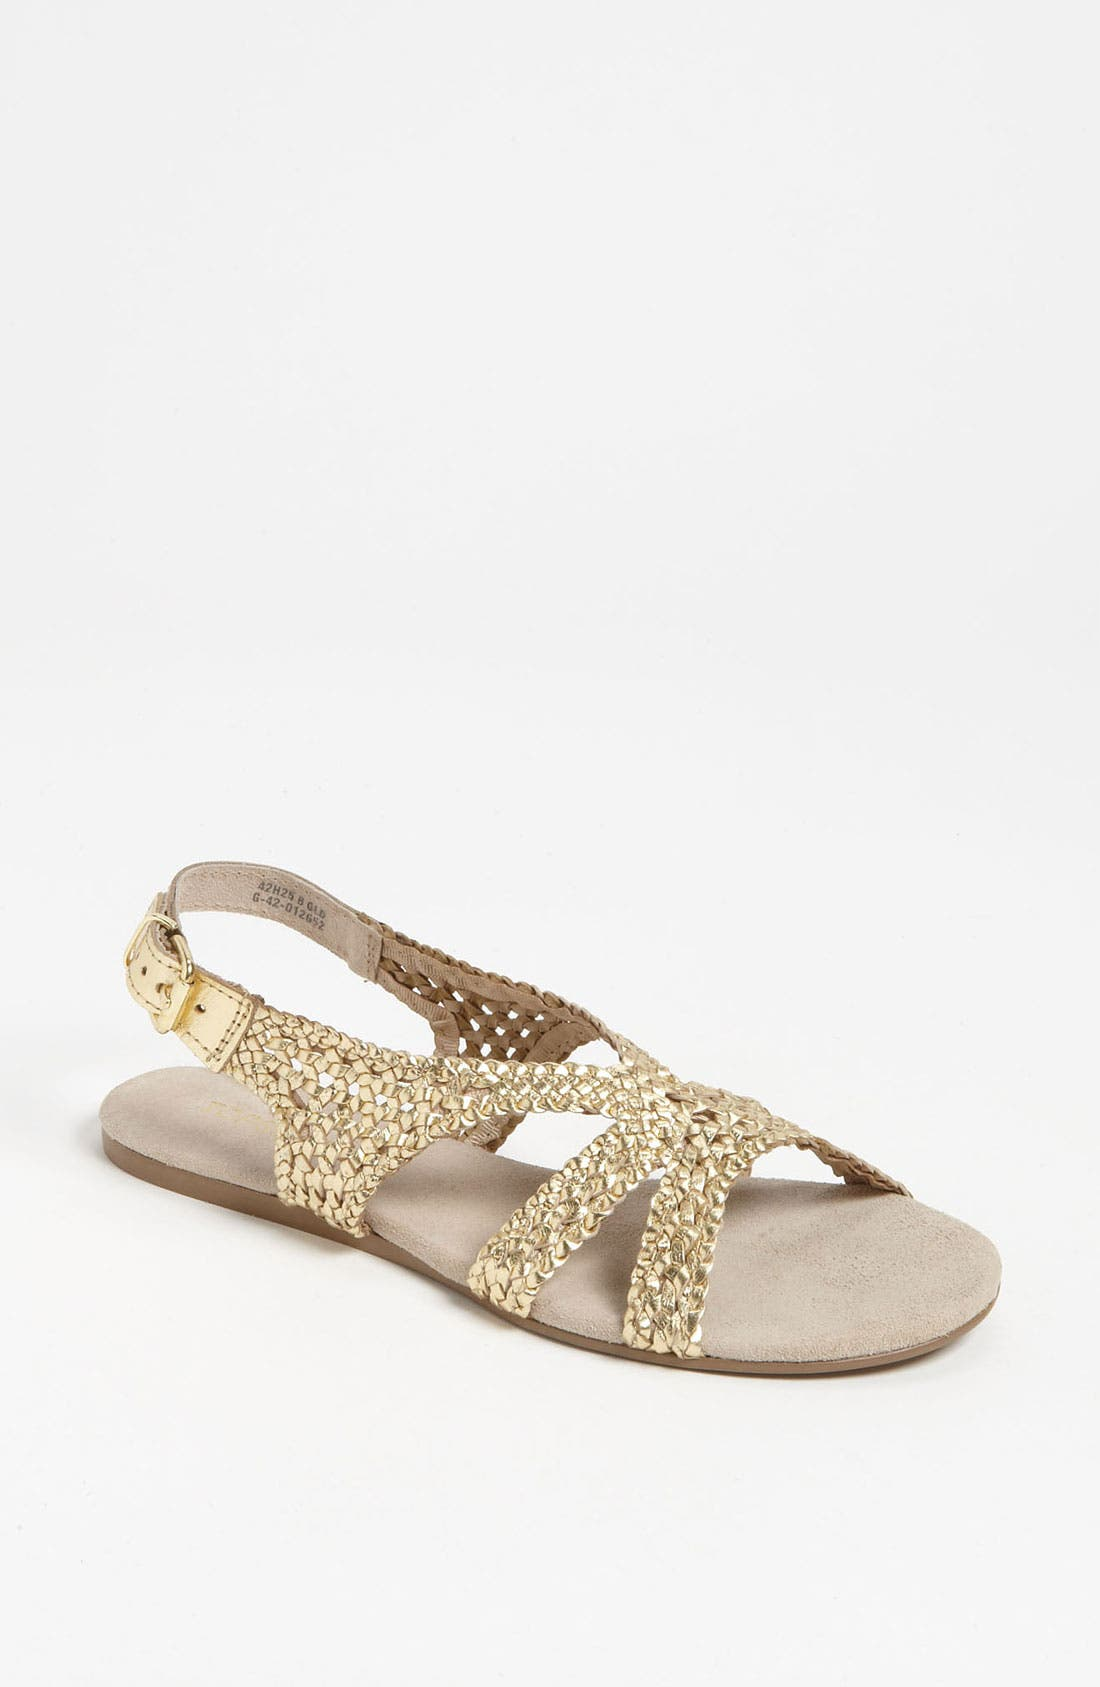 Alternate Image 1 Selected - Topshop 'Hinders' Woven Sandal